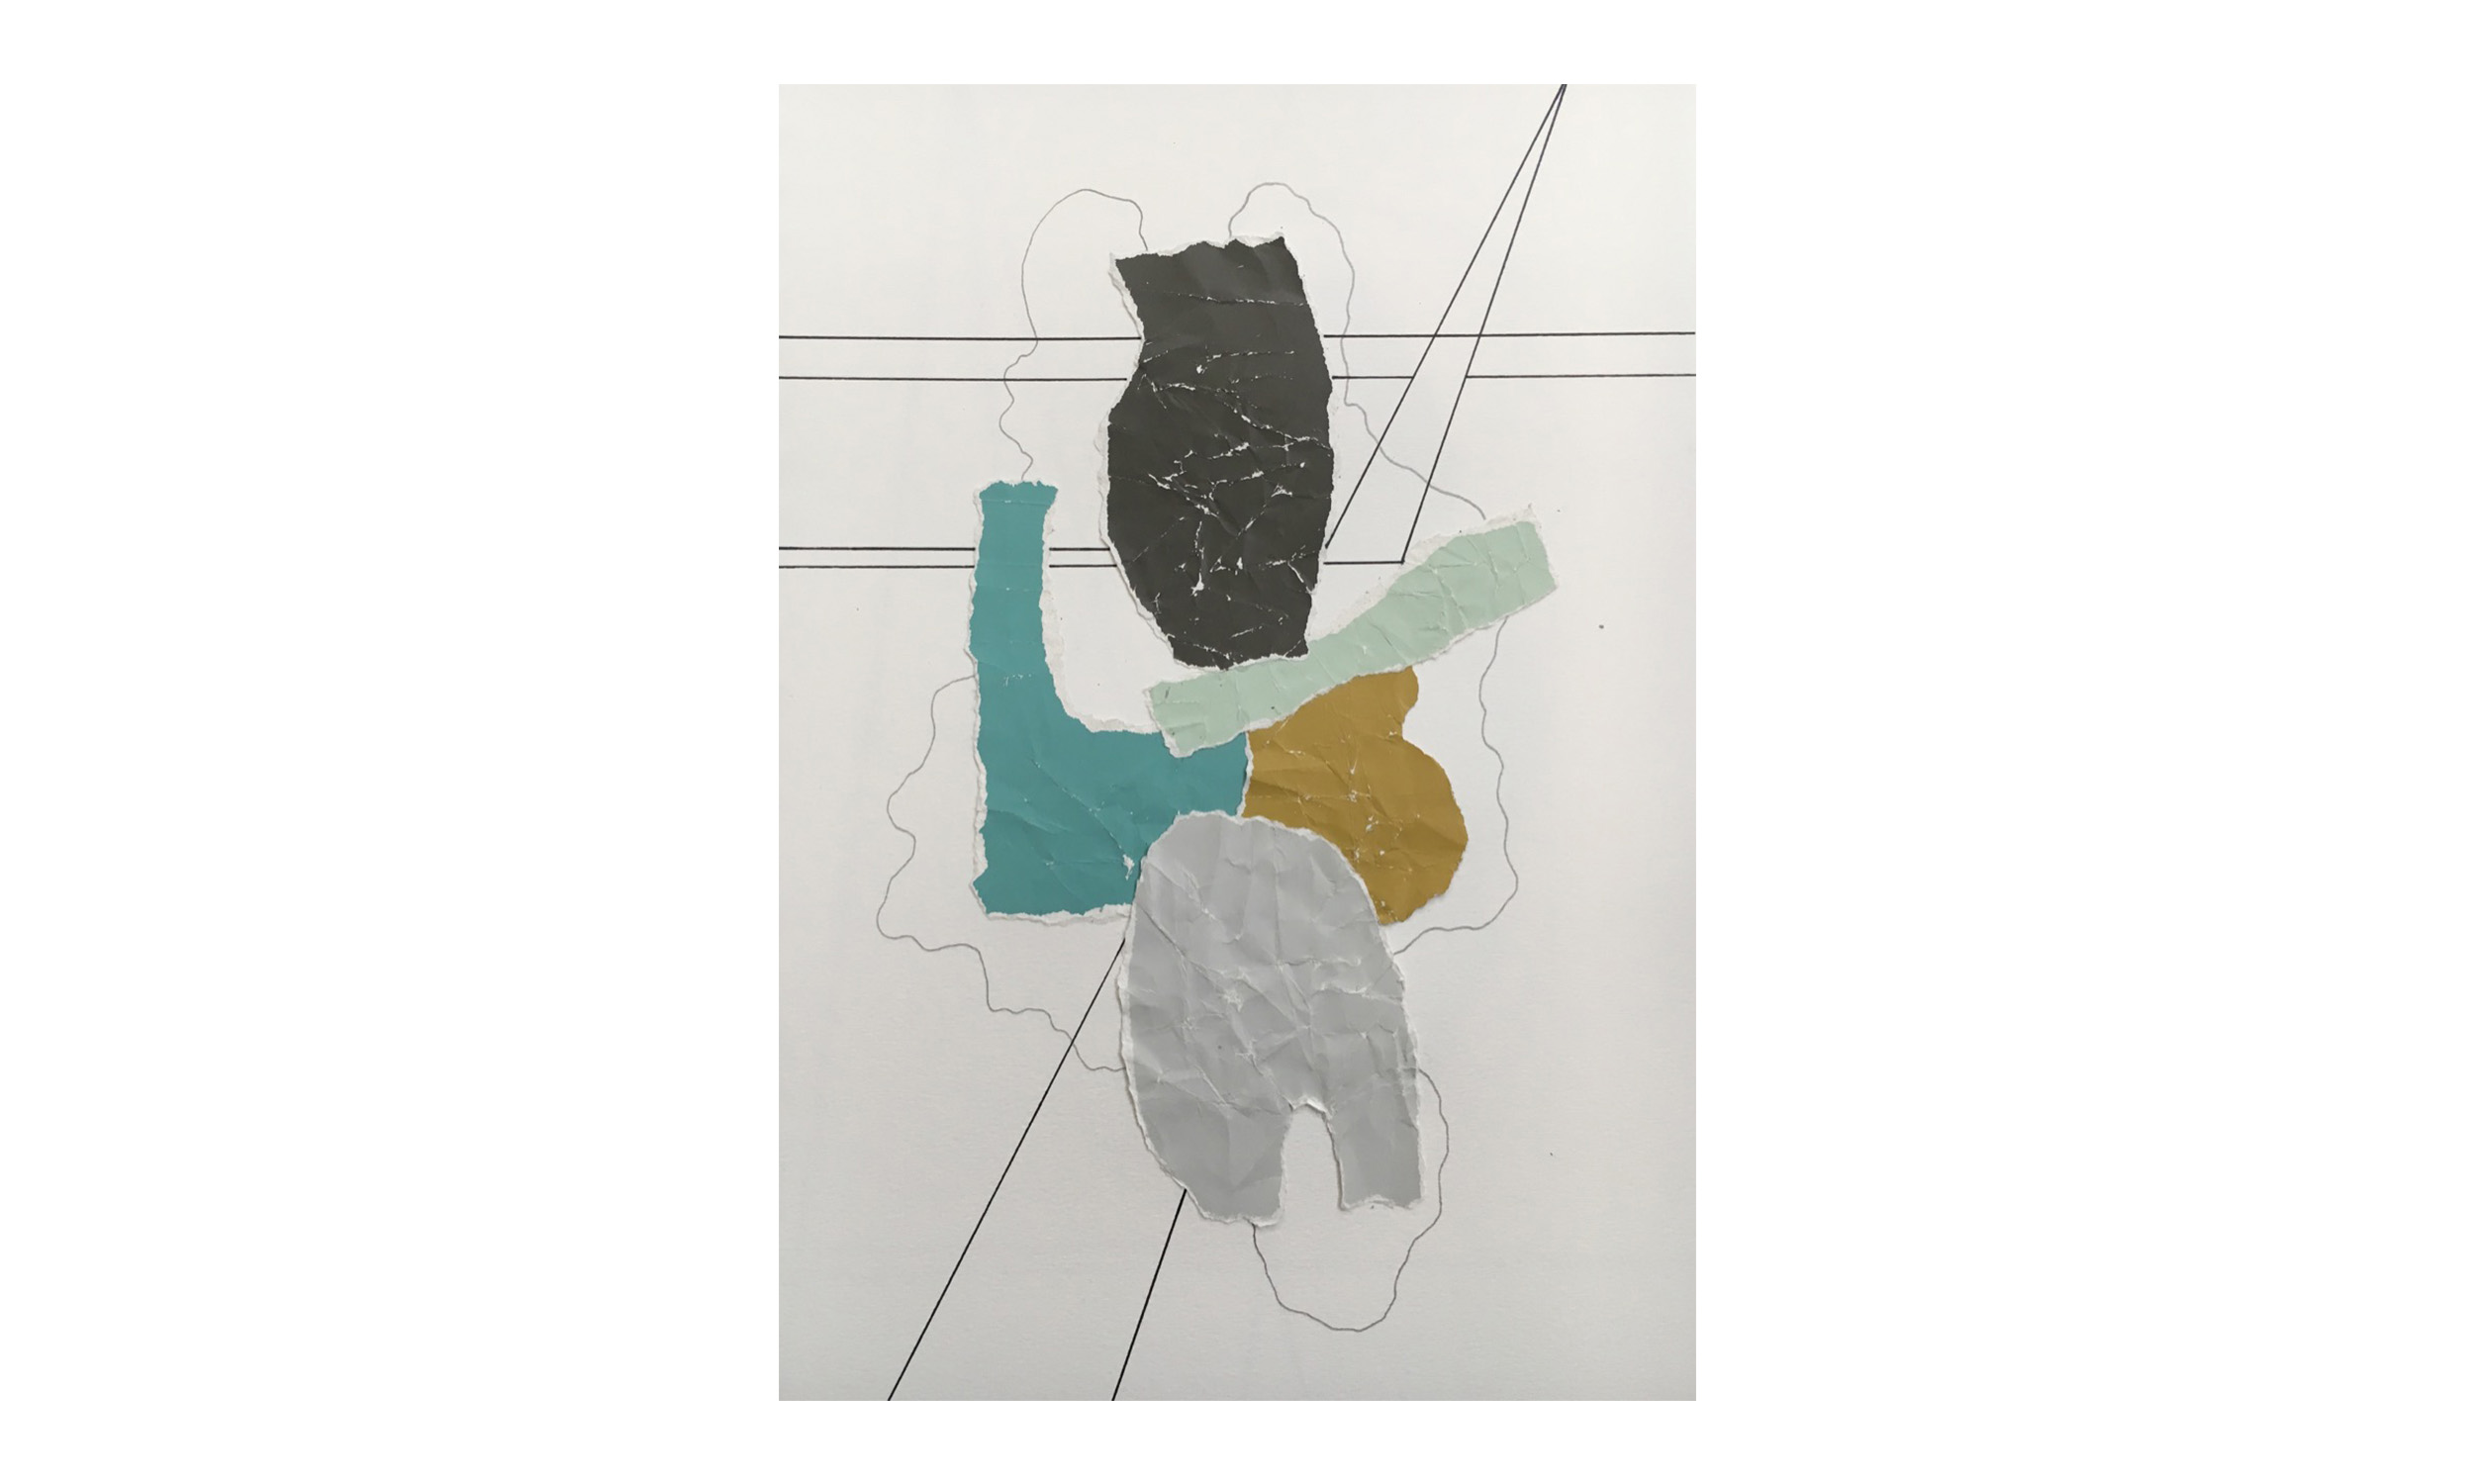 Imaginary Maps 4 , paint chips on paper, pen, pencil, 9 x 12 inches, unframed, $200    Contact us for purchase